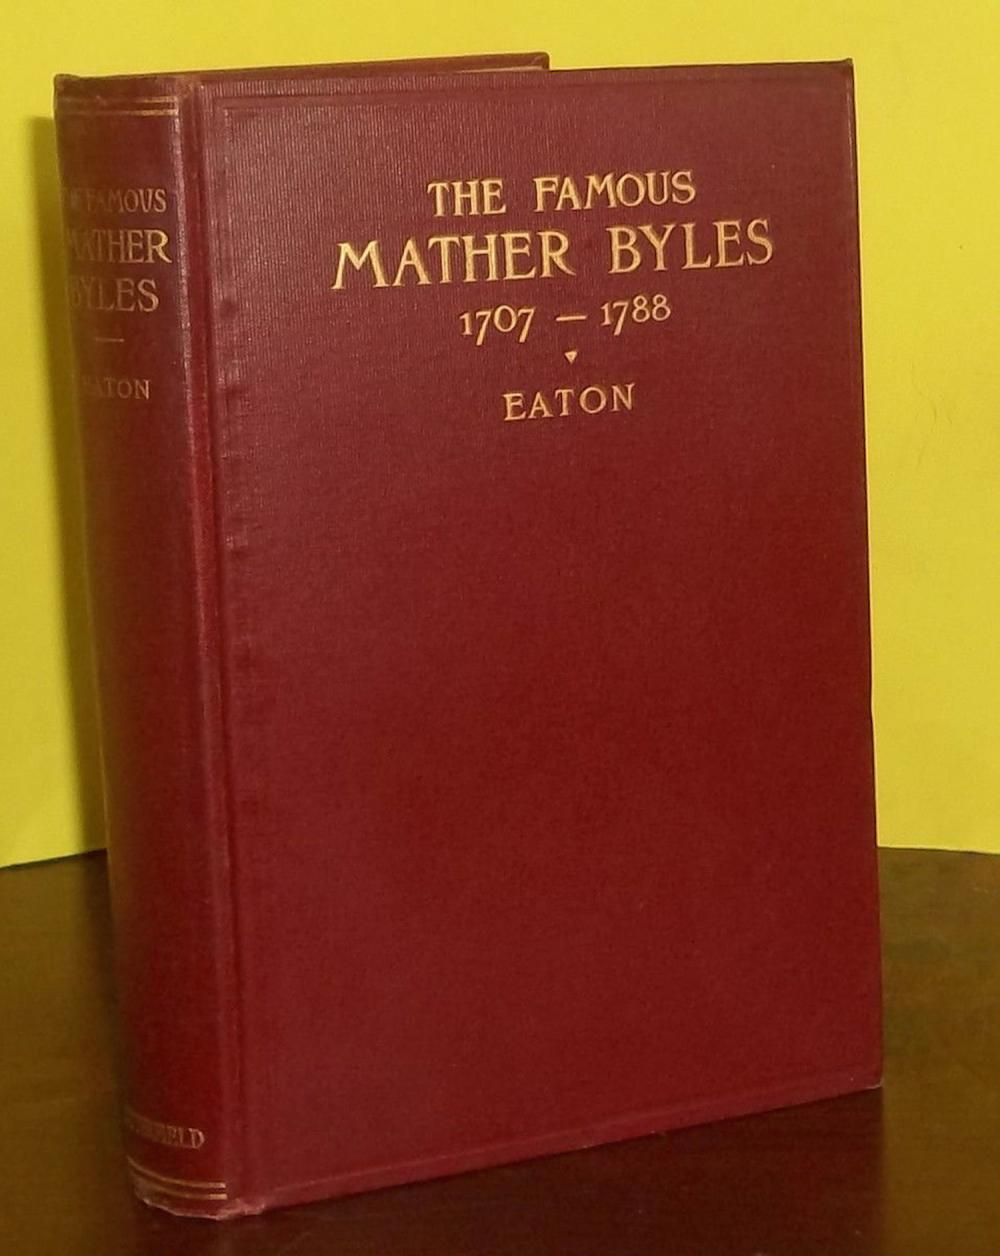 """The Famous Mather Byles 1707-1788"" by Arthur Eaton ANTIQUE 1914 Hardcover Biography Of An American Tory 1st Edition 1st Printing"